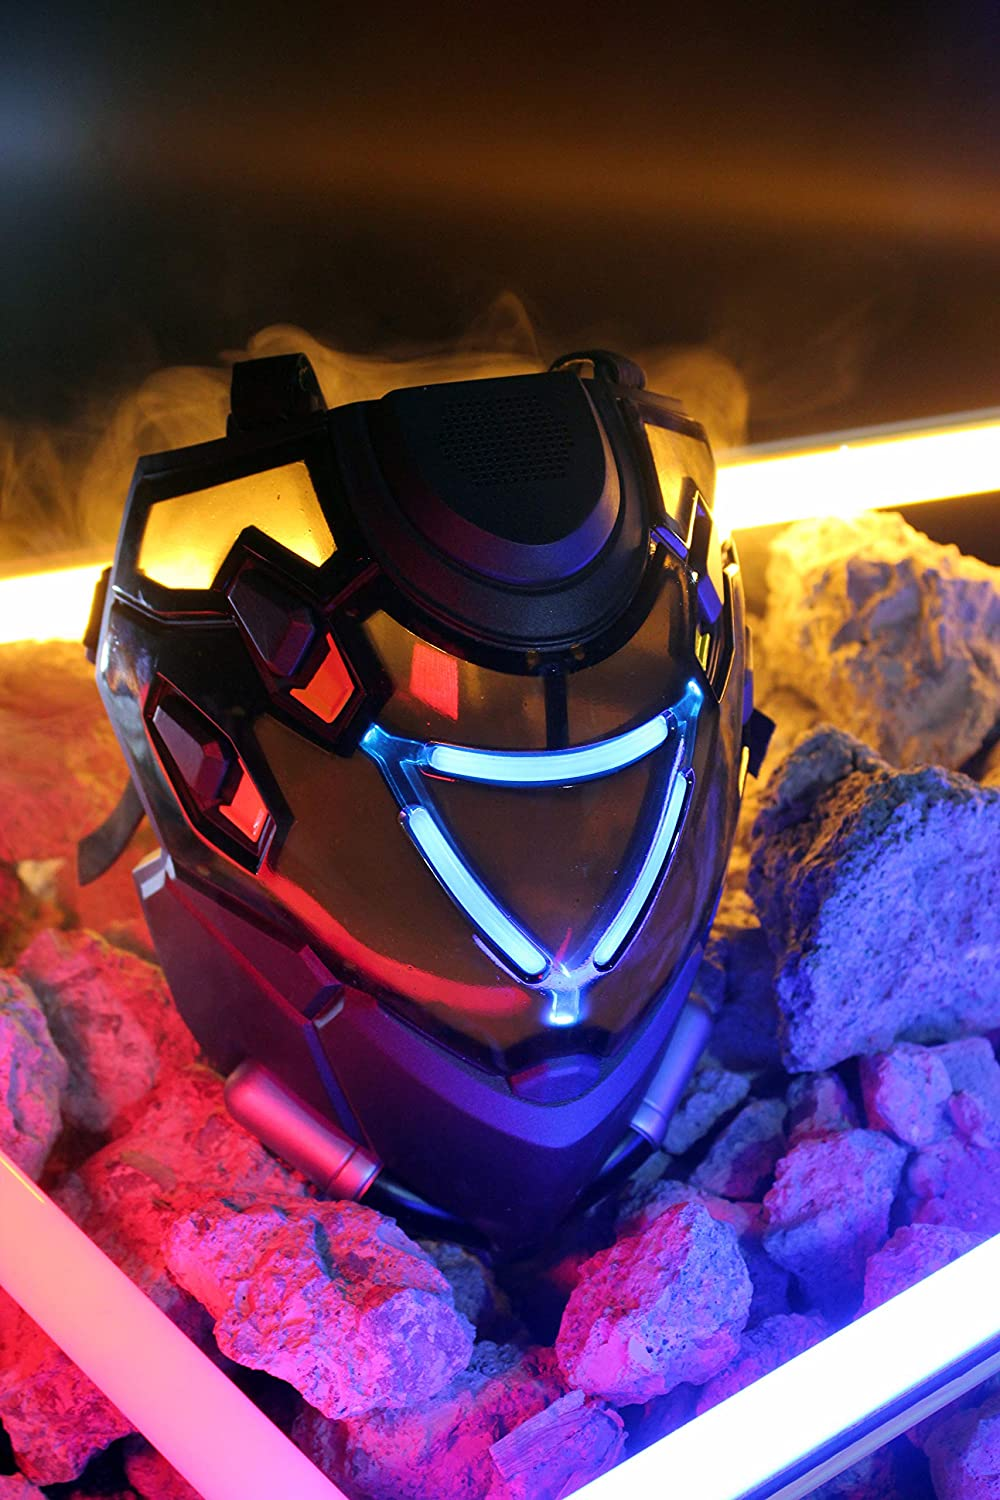 25. Overwatch Ana Shrike LED Glowing Mask / Cosplay Helmet (Officially licenced)